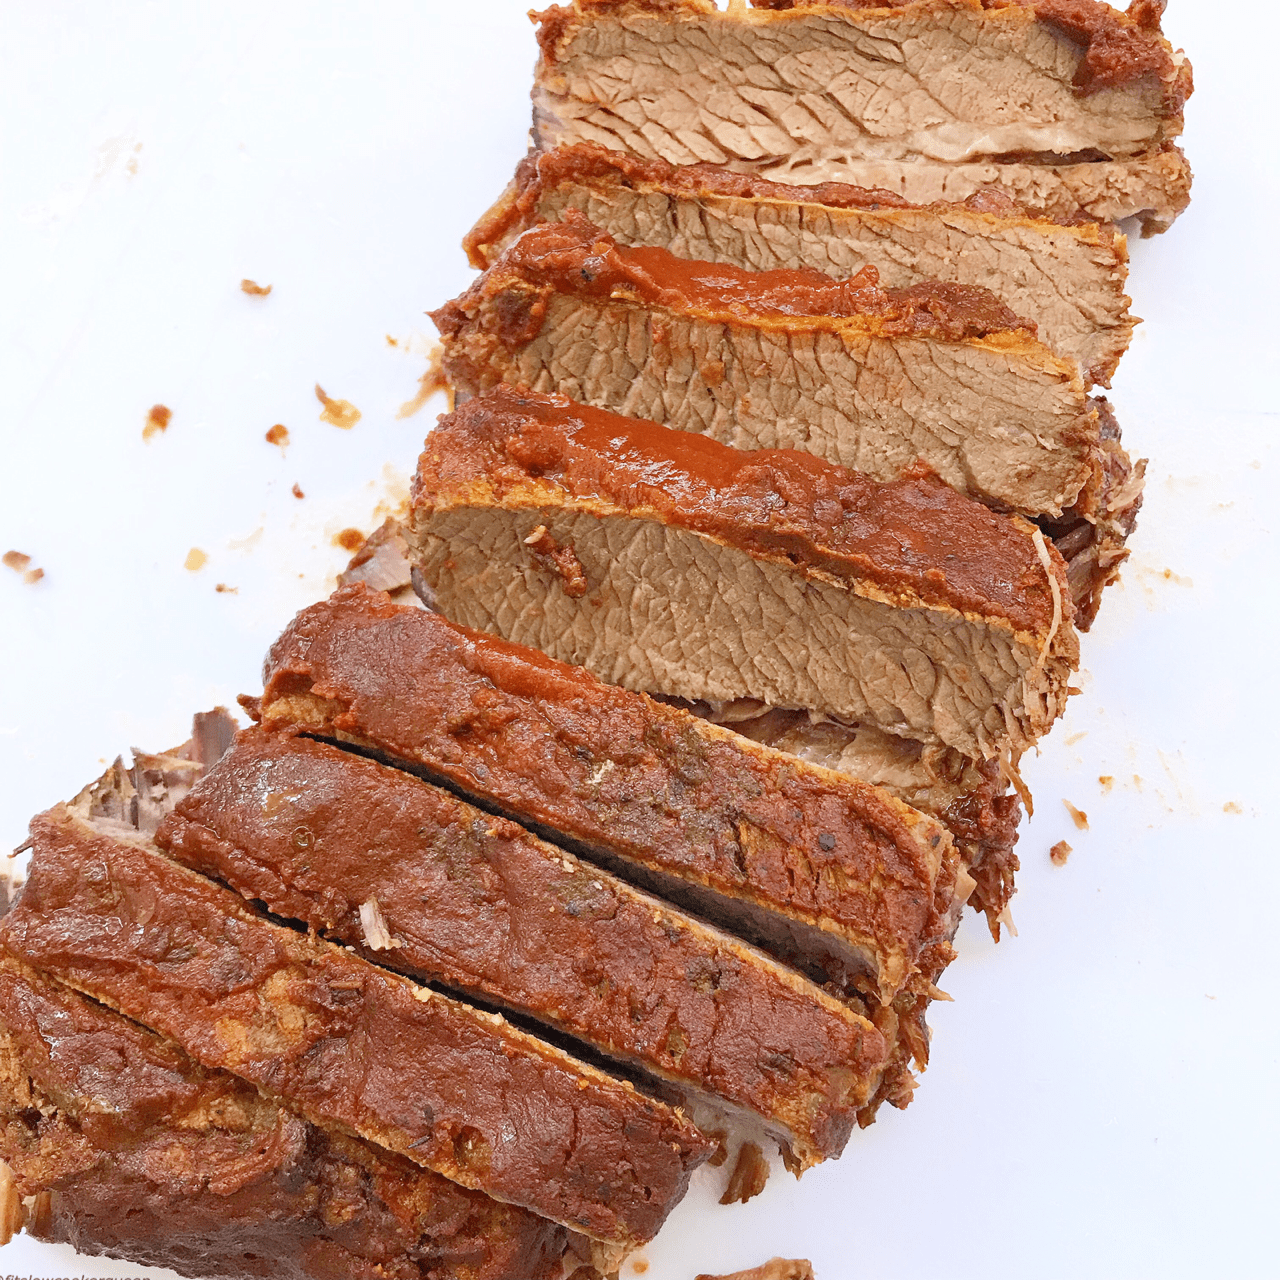 This simple BBQ brisket recipe uses a homemade, tandy sauce that's both paleo and whole30 compliant. Brisket is usually made on the barbecue but this tough yet delicious meat is also perfect for the low & slow cooking method of the slow cooker.